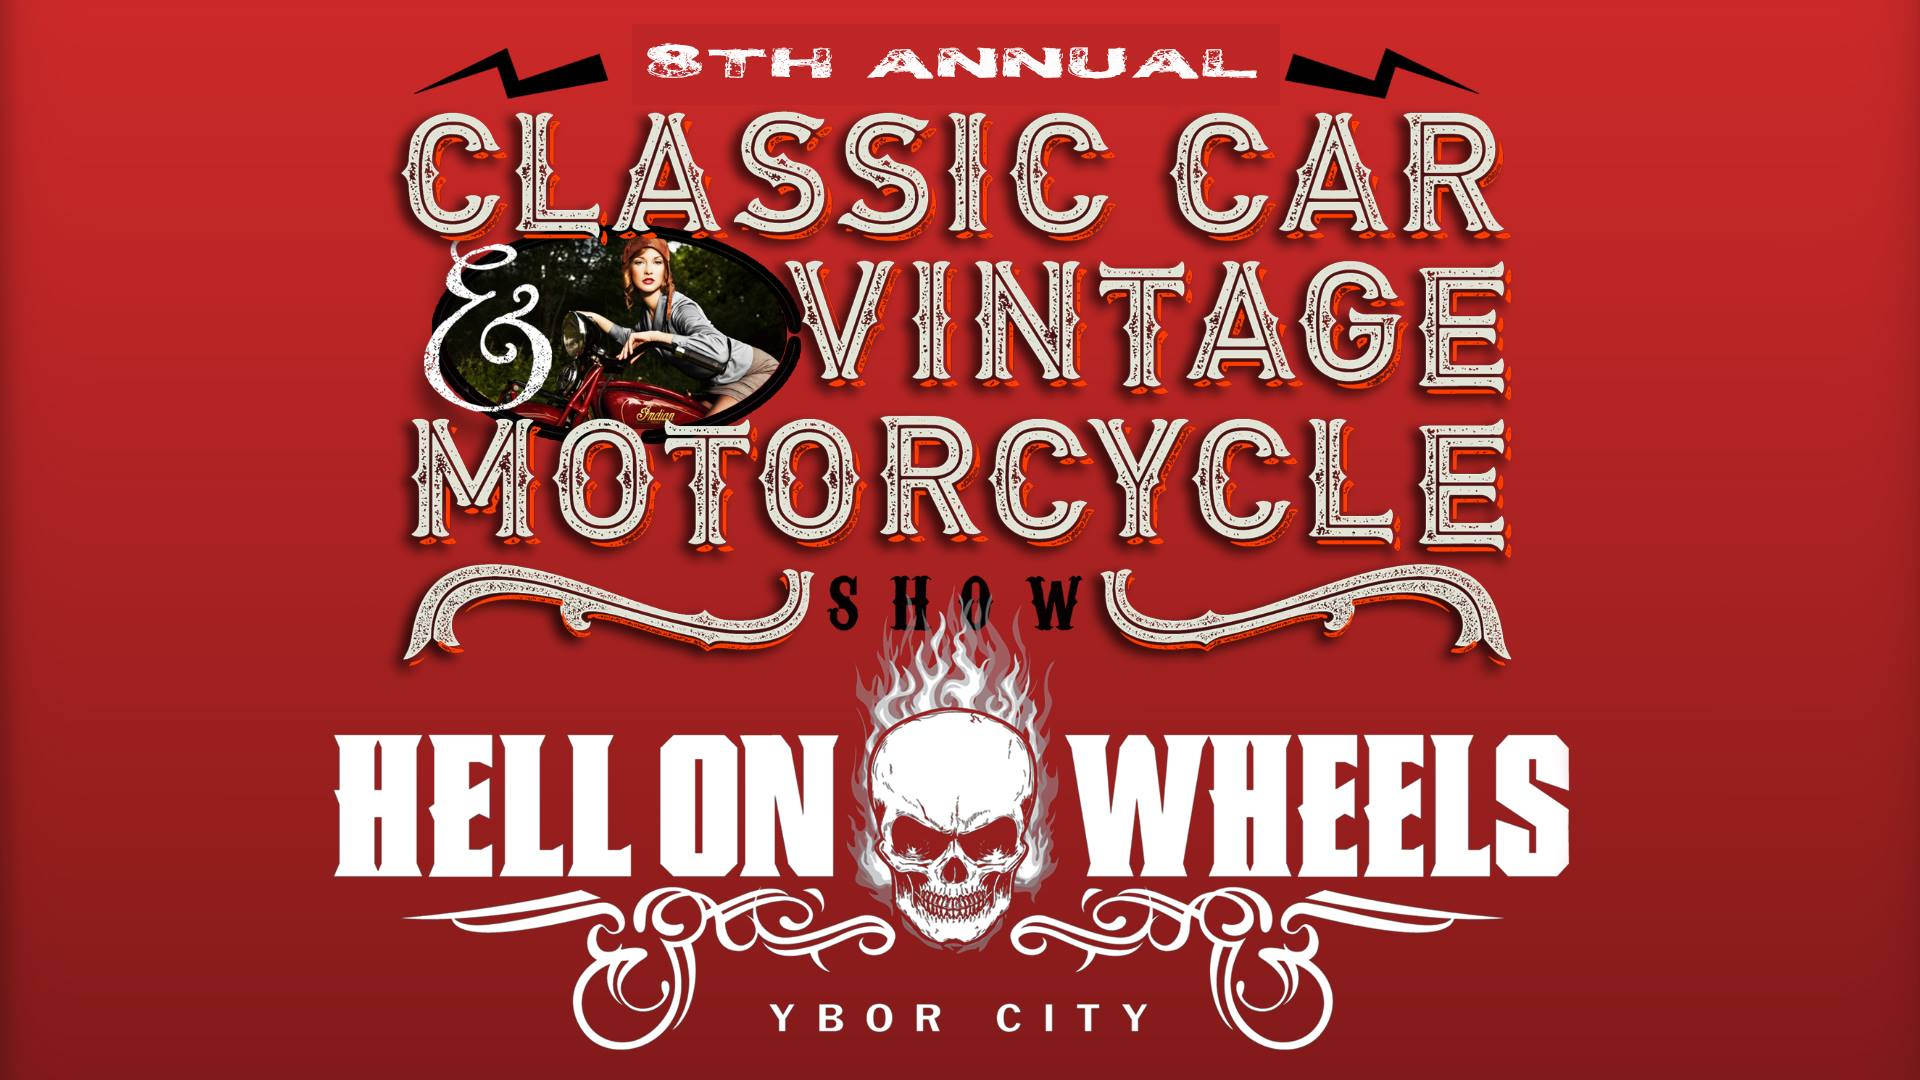 Hell on Wheels Classic Car Show